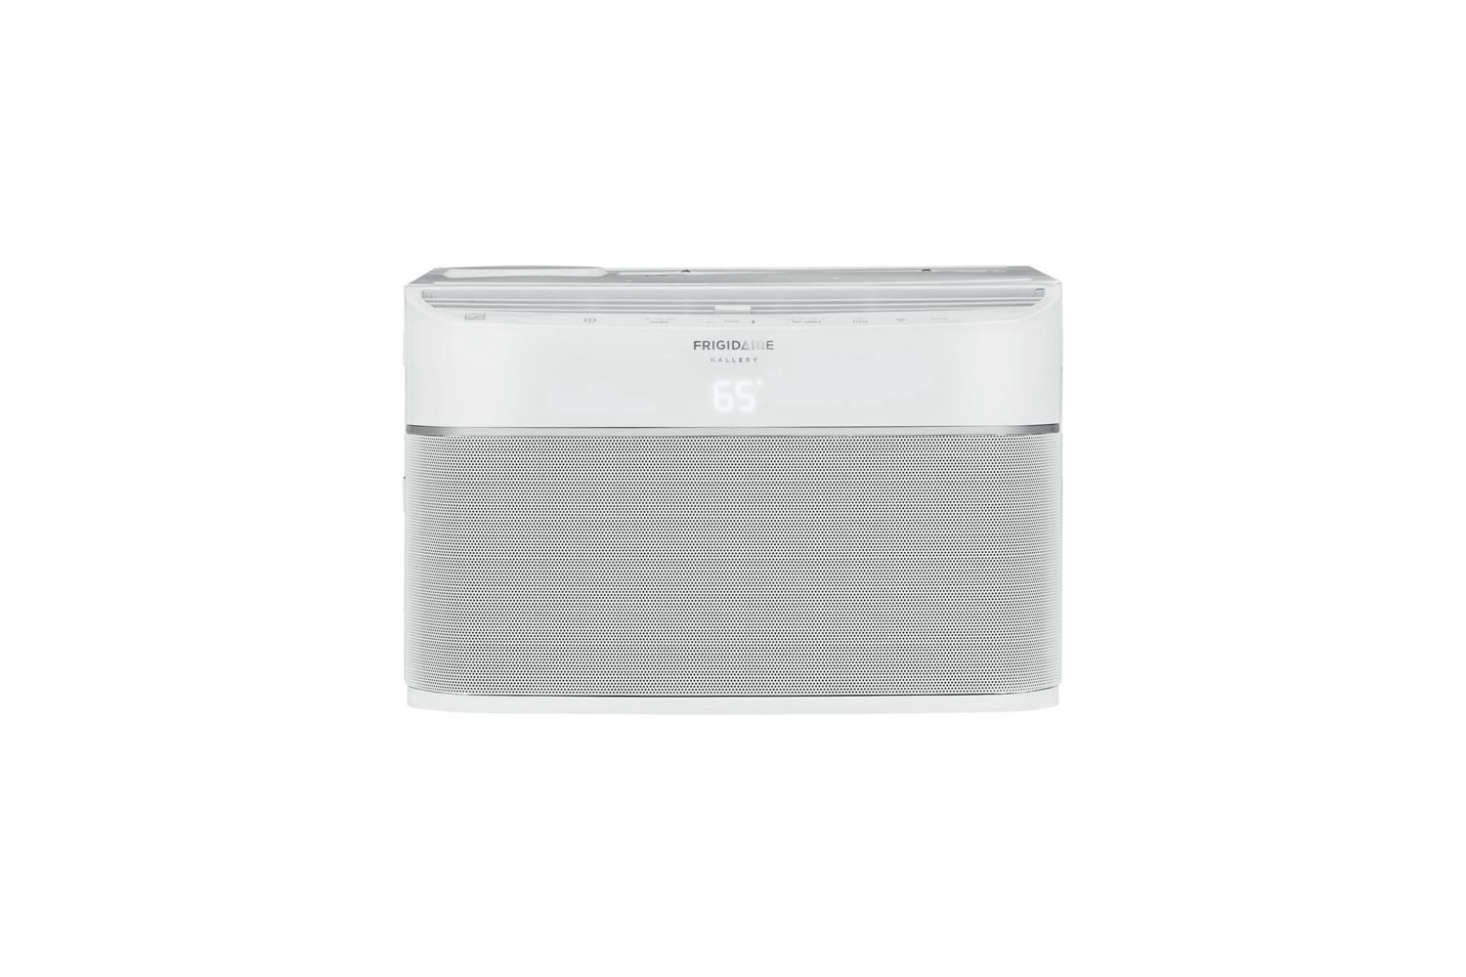 The Frigidaire Energy Star Window Mount Air Conditioner (FGRC084WAsrc=